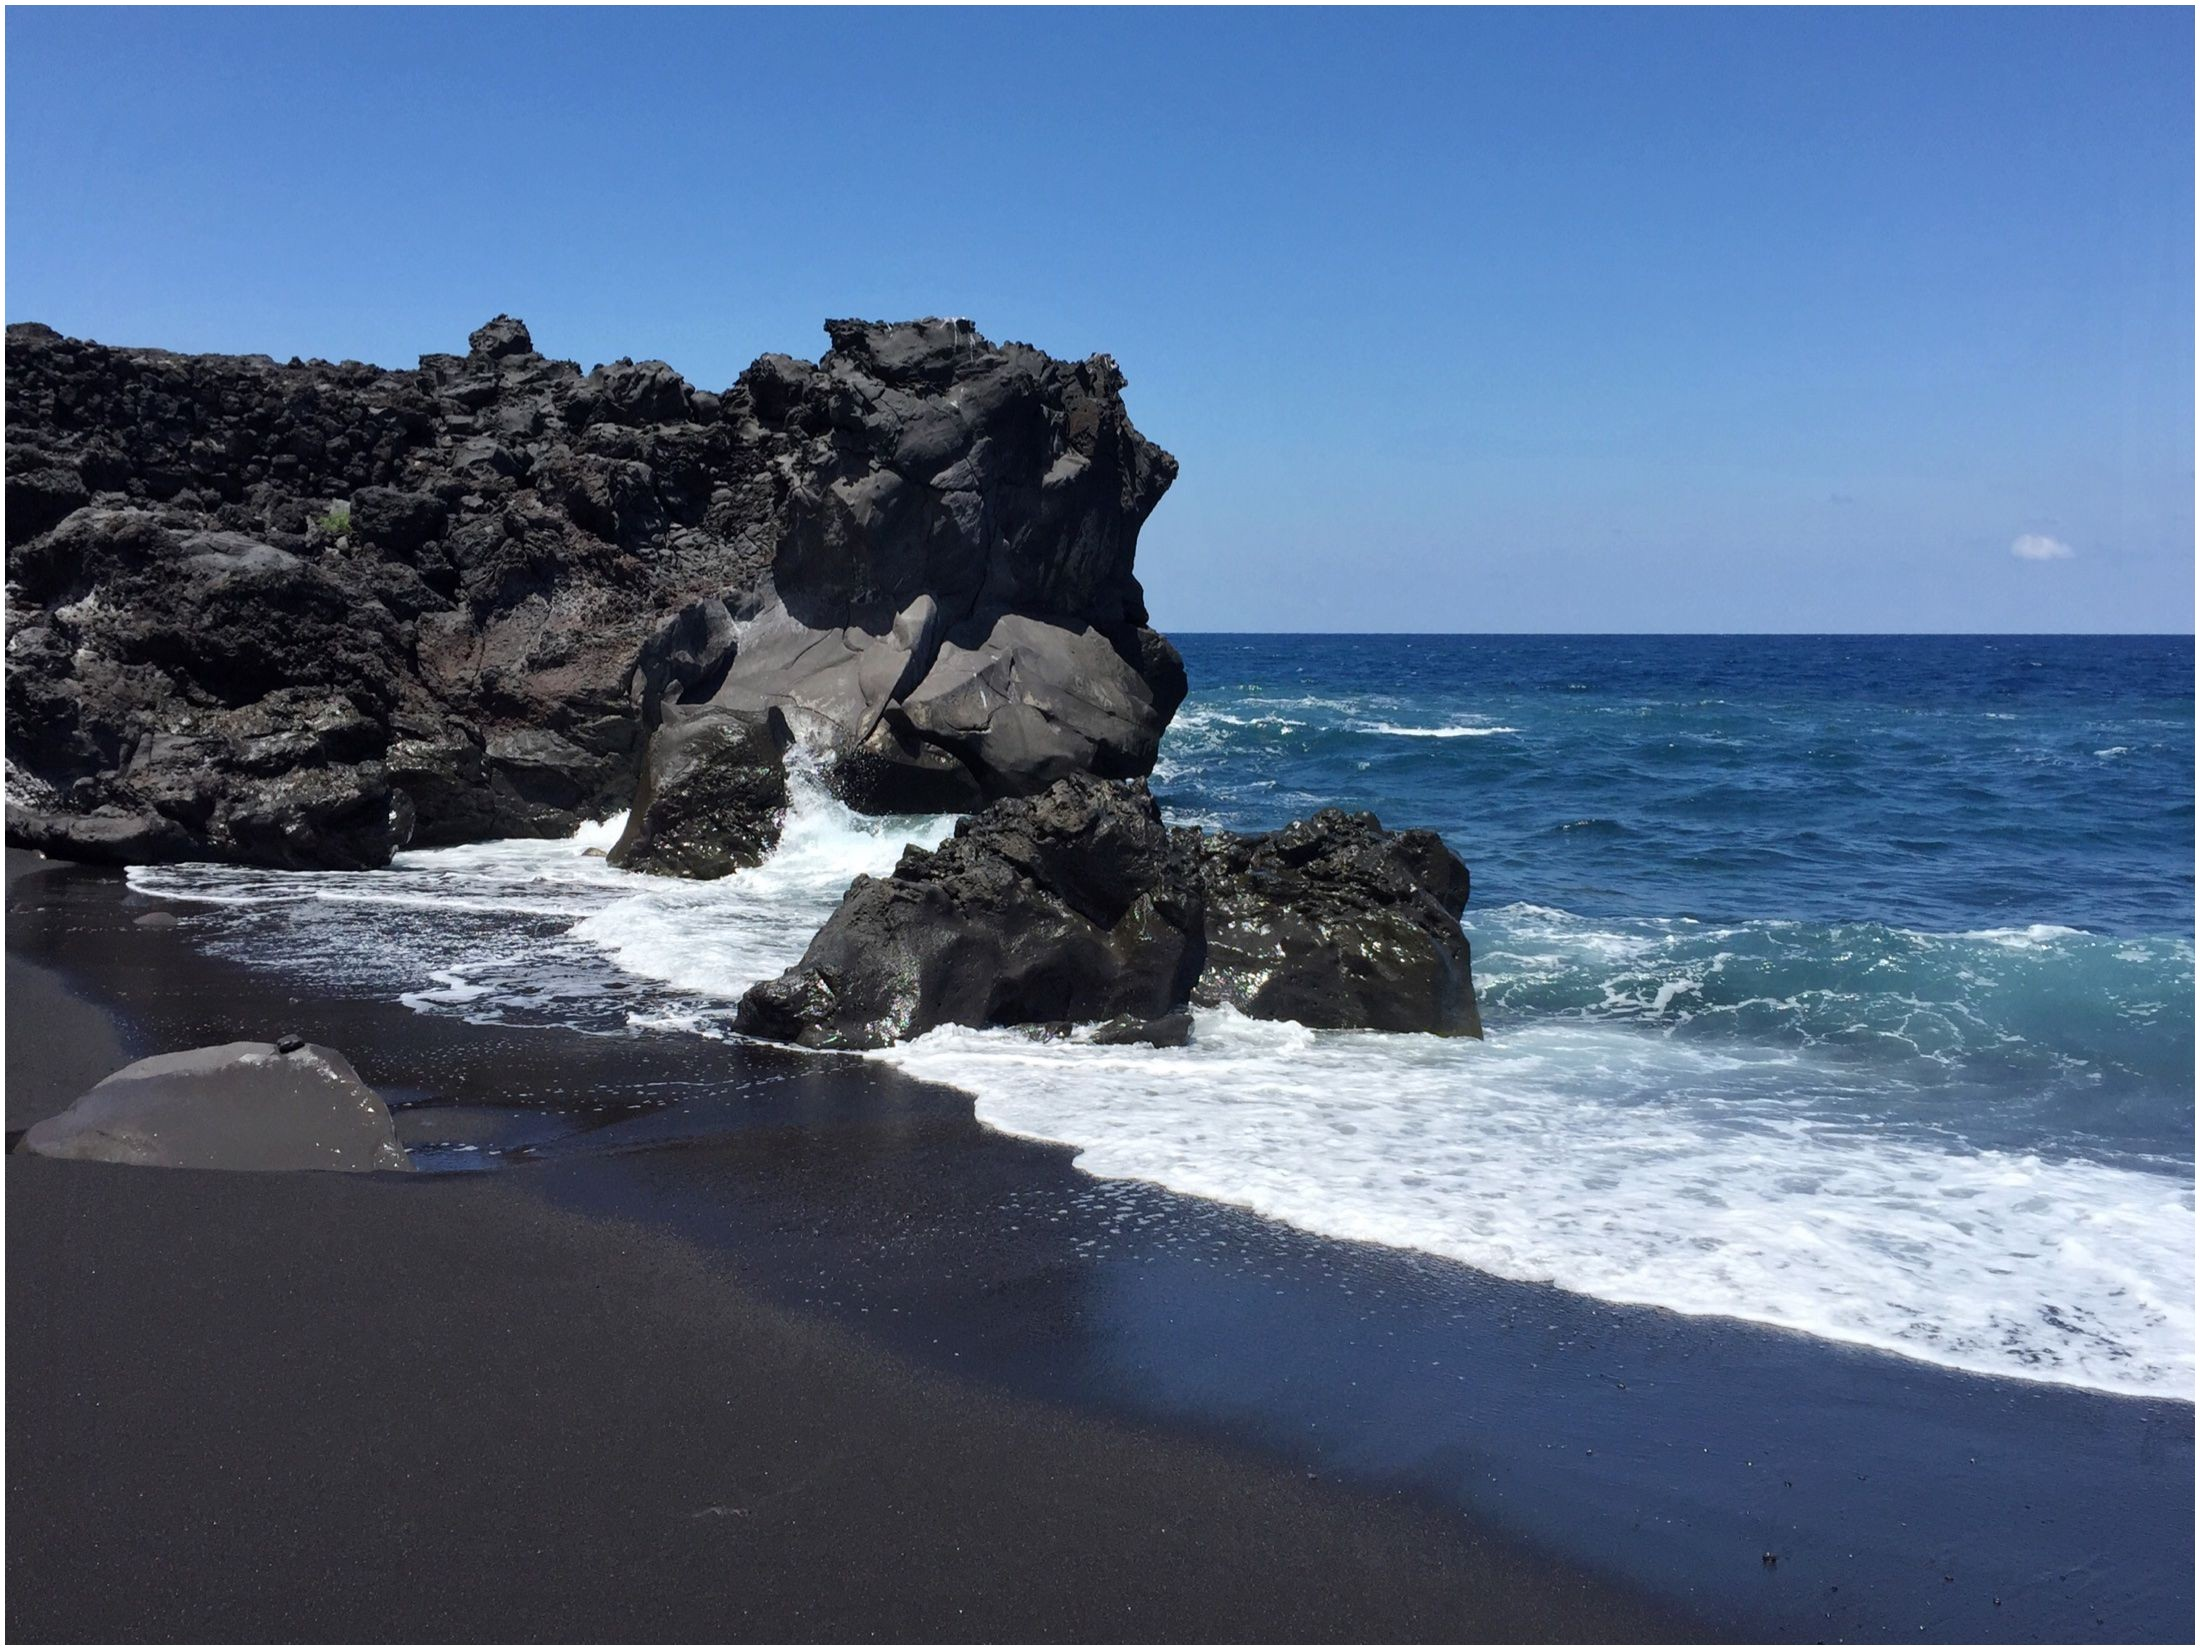 Beach In Italy with Black Sand Elegant the 20 Black Sand Beaches You Need to Visit to Believe